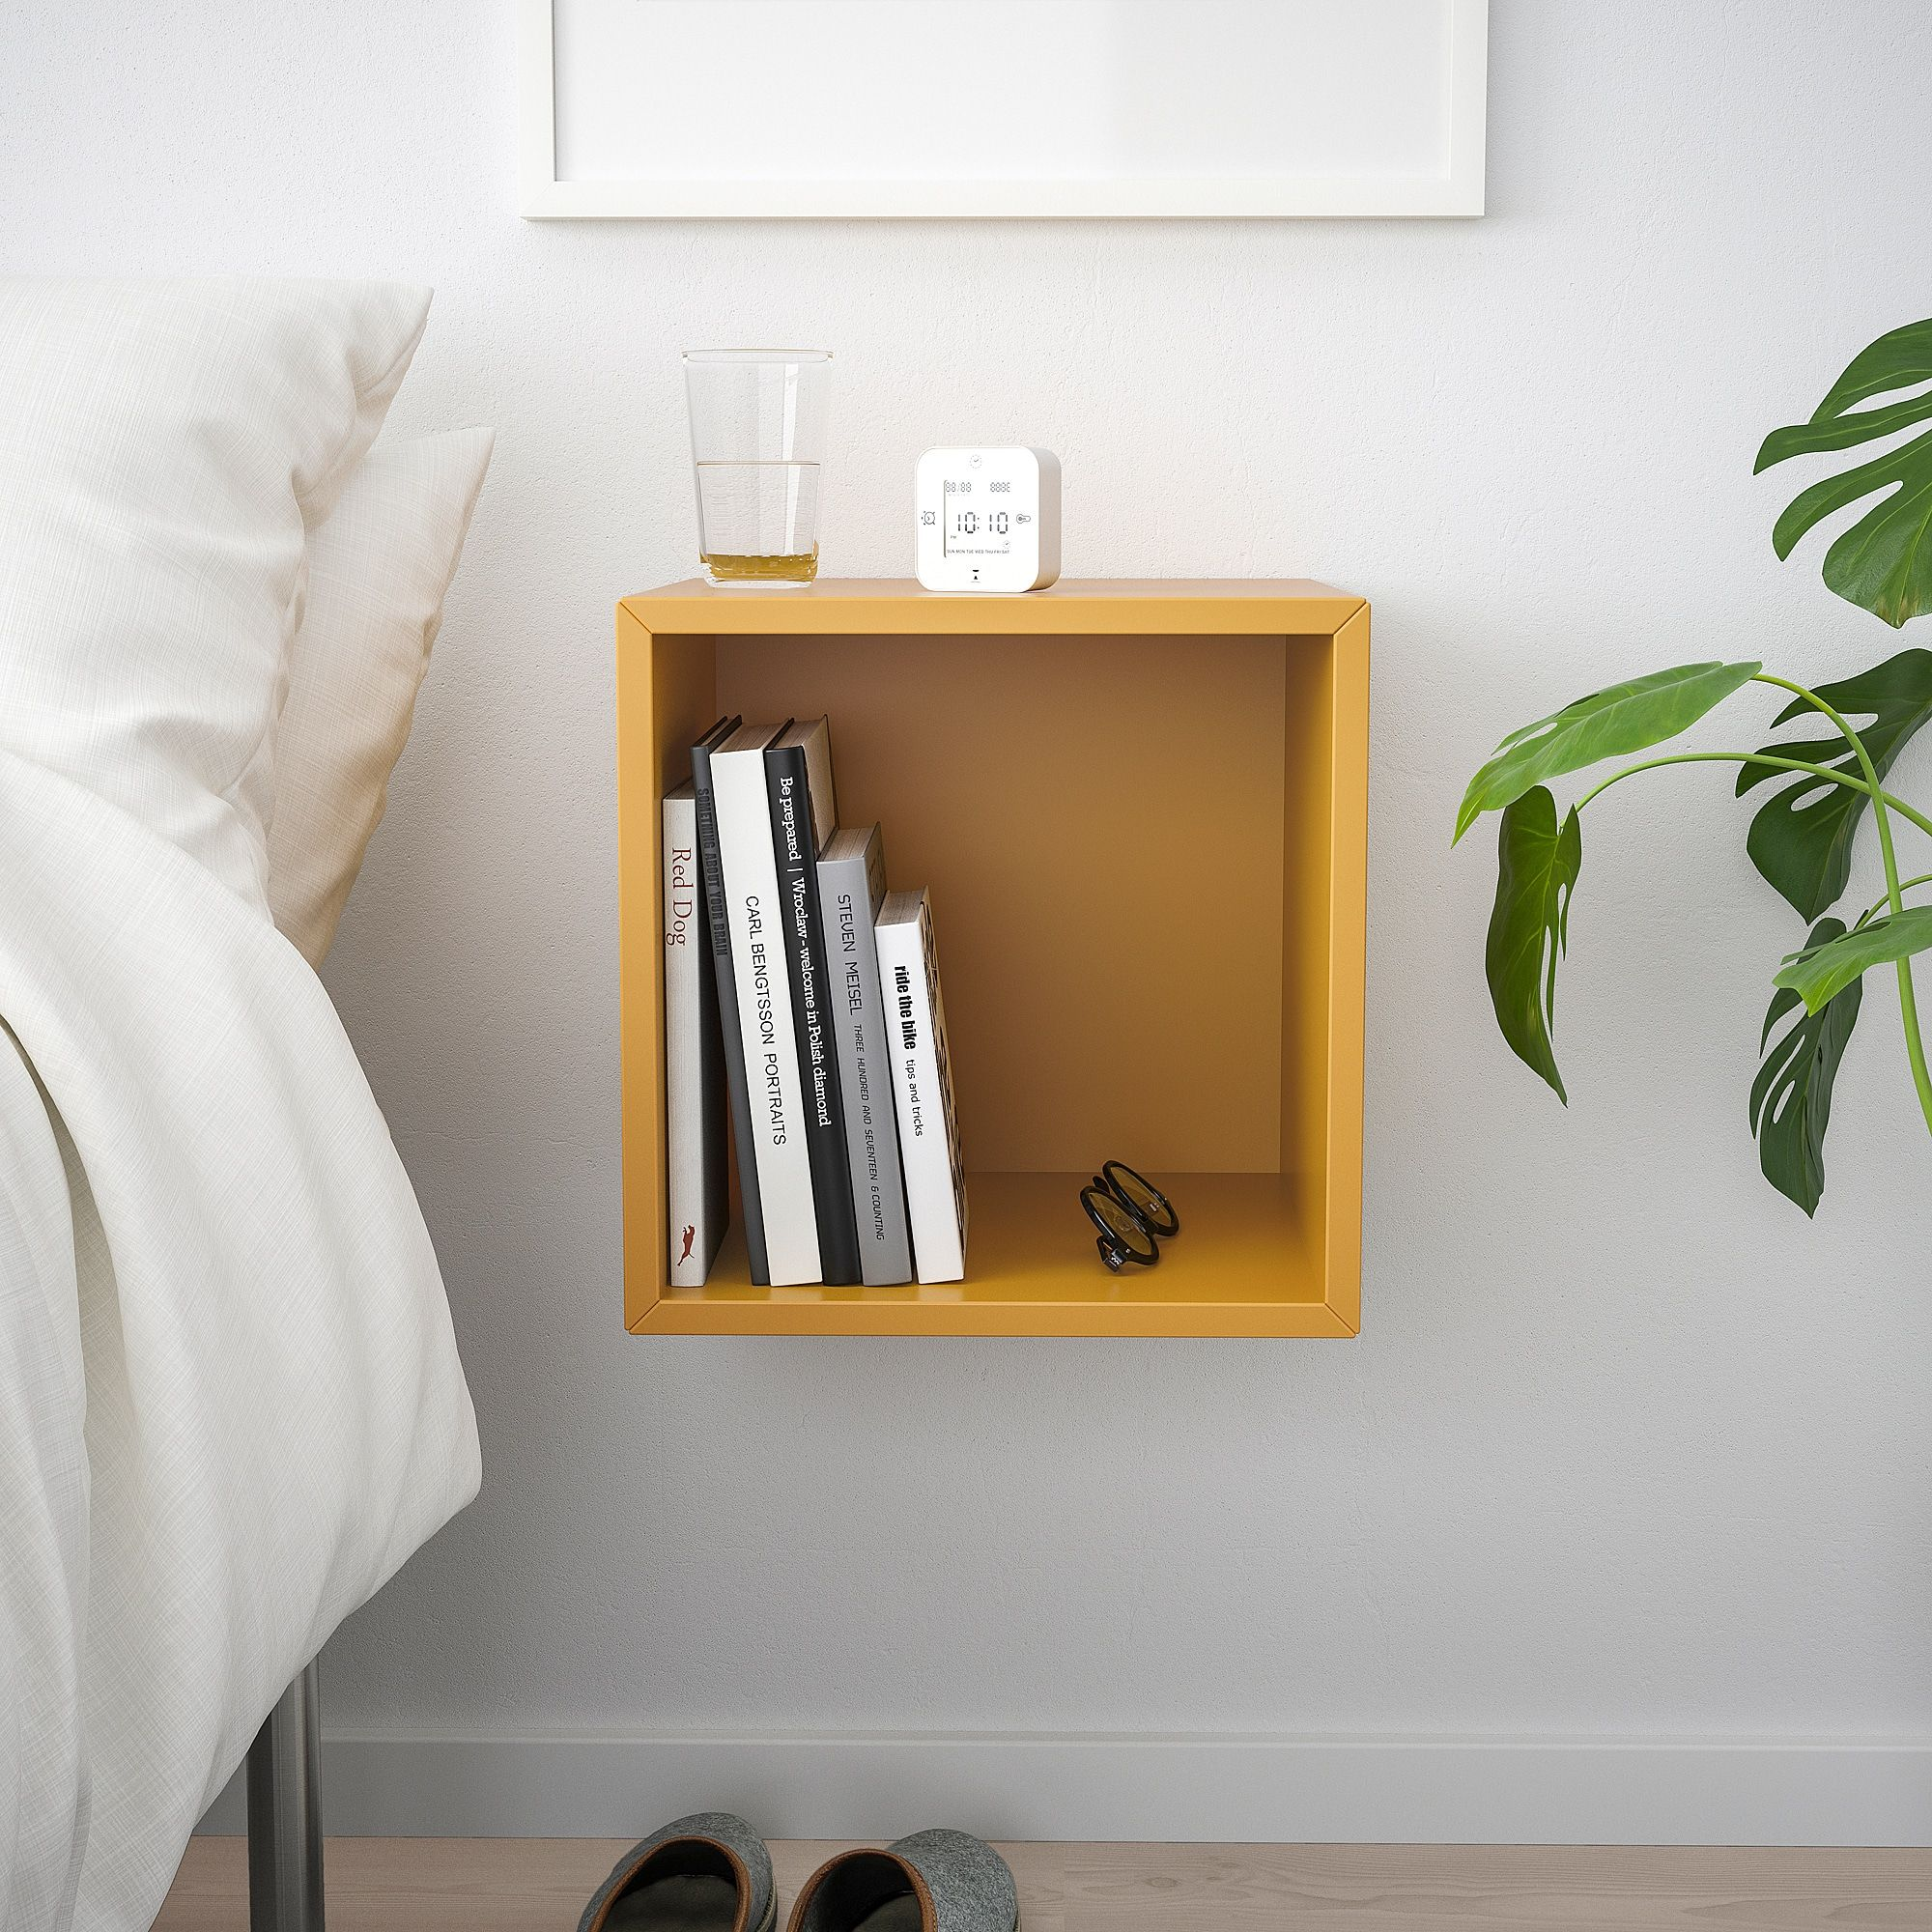 Eket Wall Mounted Shelving Unit Golden Brown Width 13 3 4 Height 13 3 4 Shop Today Ikea In 2020 Wall Mounted Shelving Unit Eket Wall Mounted Shelves